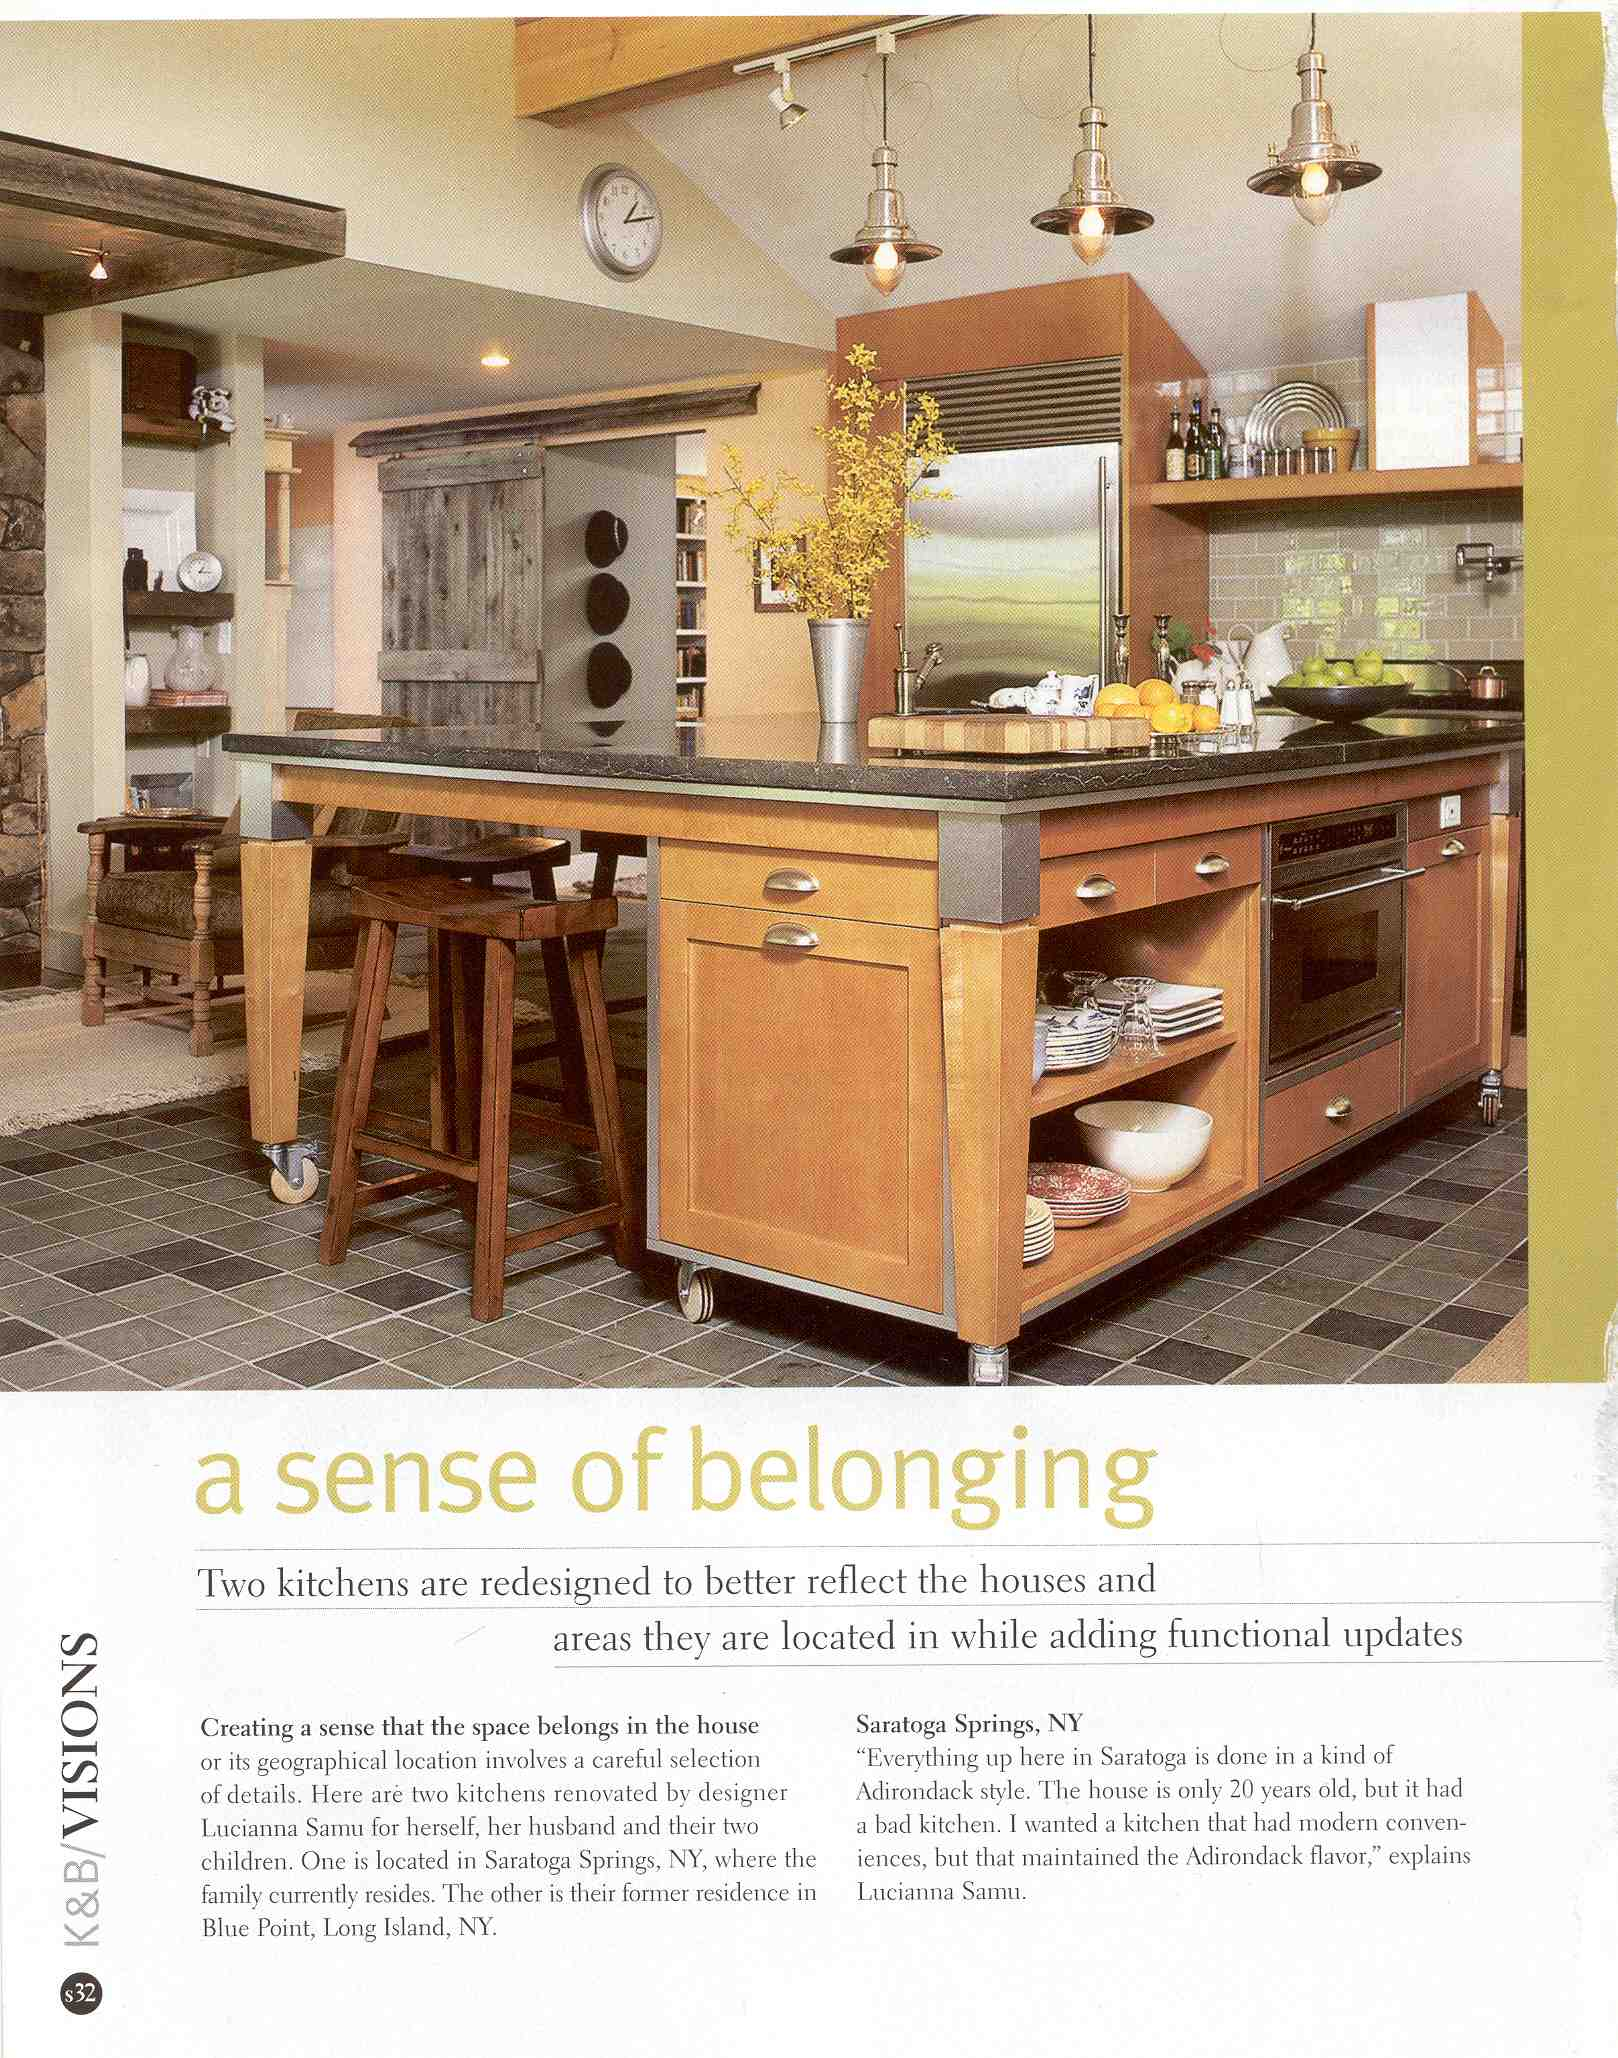 Interior design magazine home edition - Interior Design Magazine